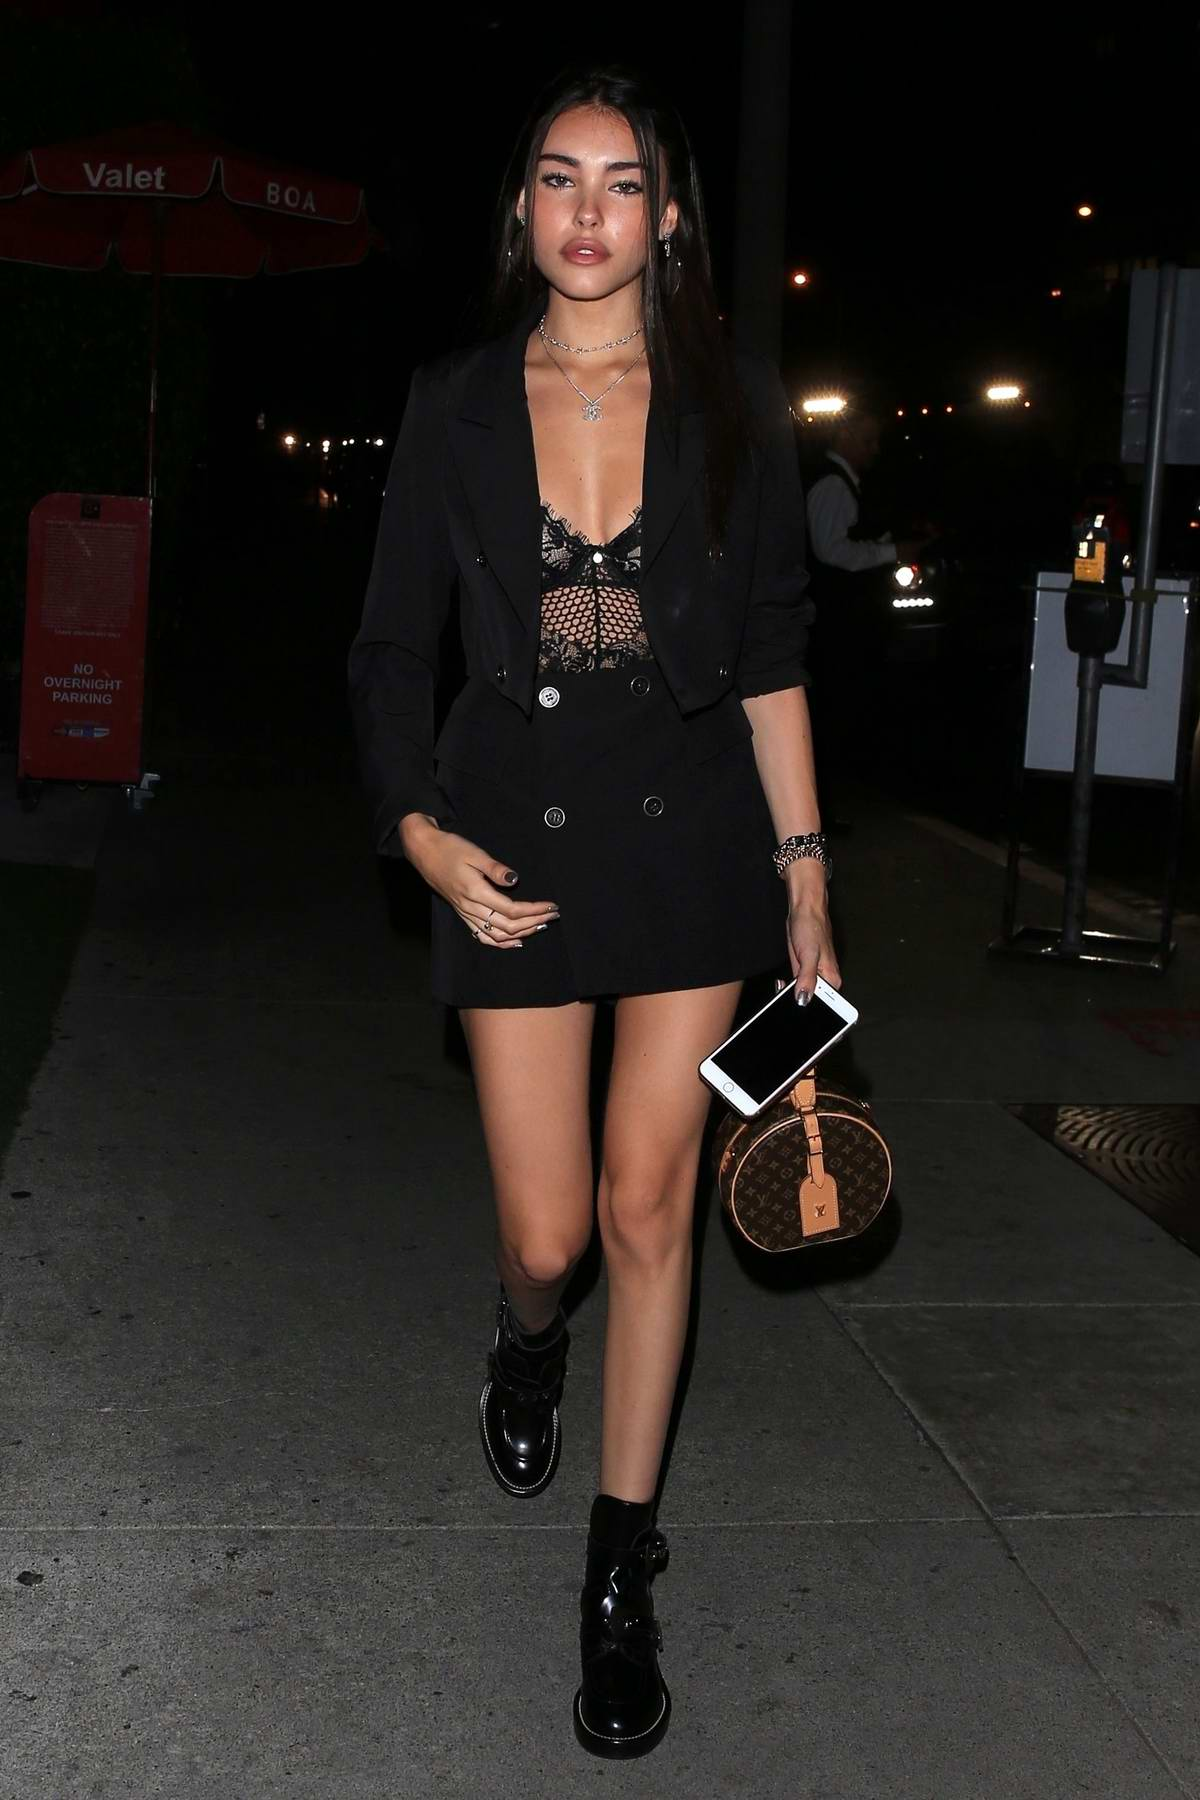 Madison Beer looked stylish in a short black outfit during a night out at BOA Steakhouse in West Hollywood, Los Angeles